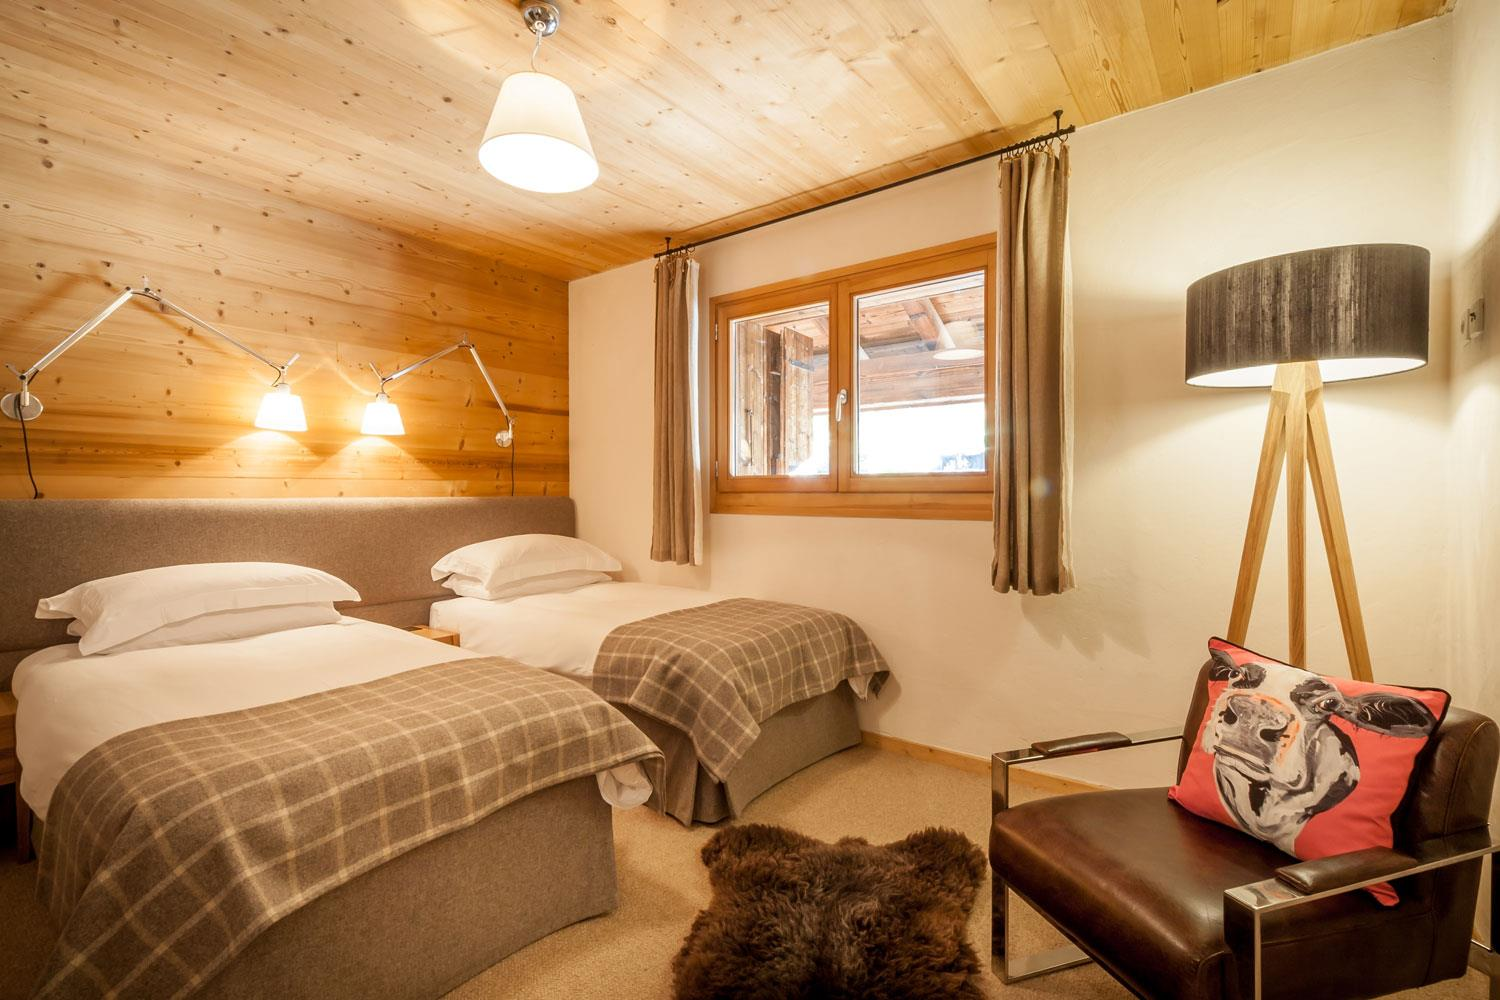 La Ferme D Elise - Bedroom - Twin